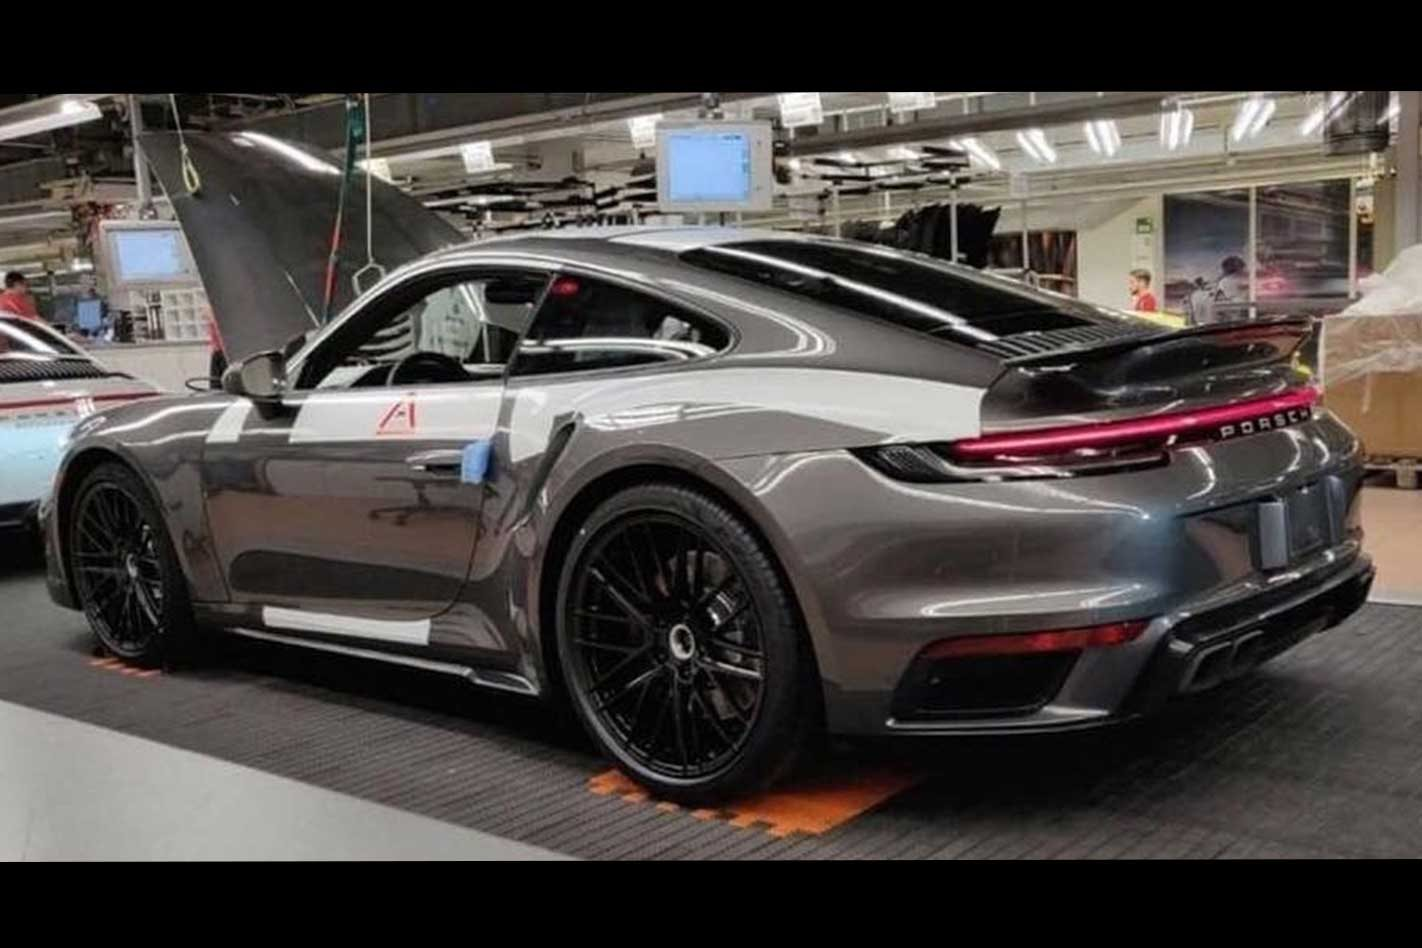 2020 Porsche 992 911 Turbo Image Leaks